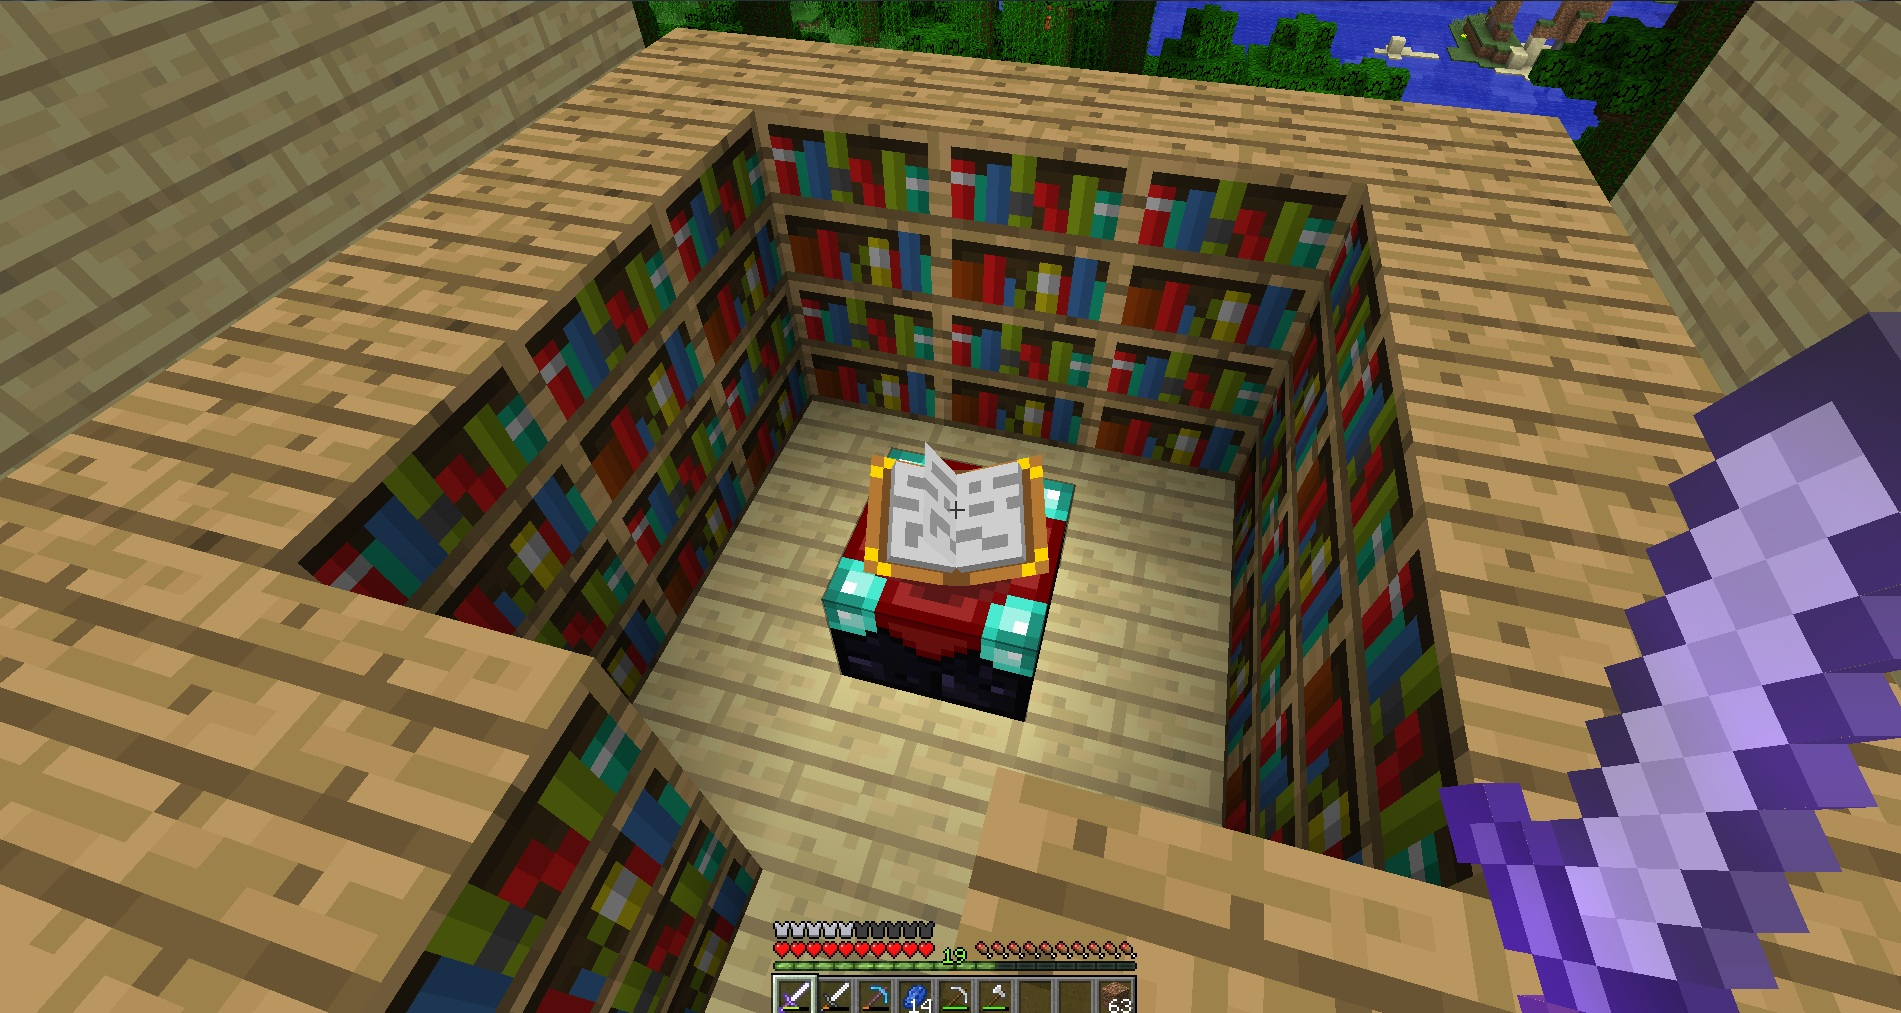 enchanting with bookshelf not working in survival mode - survival